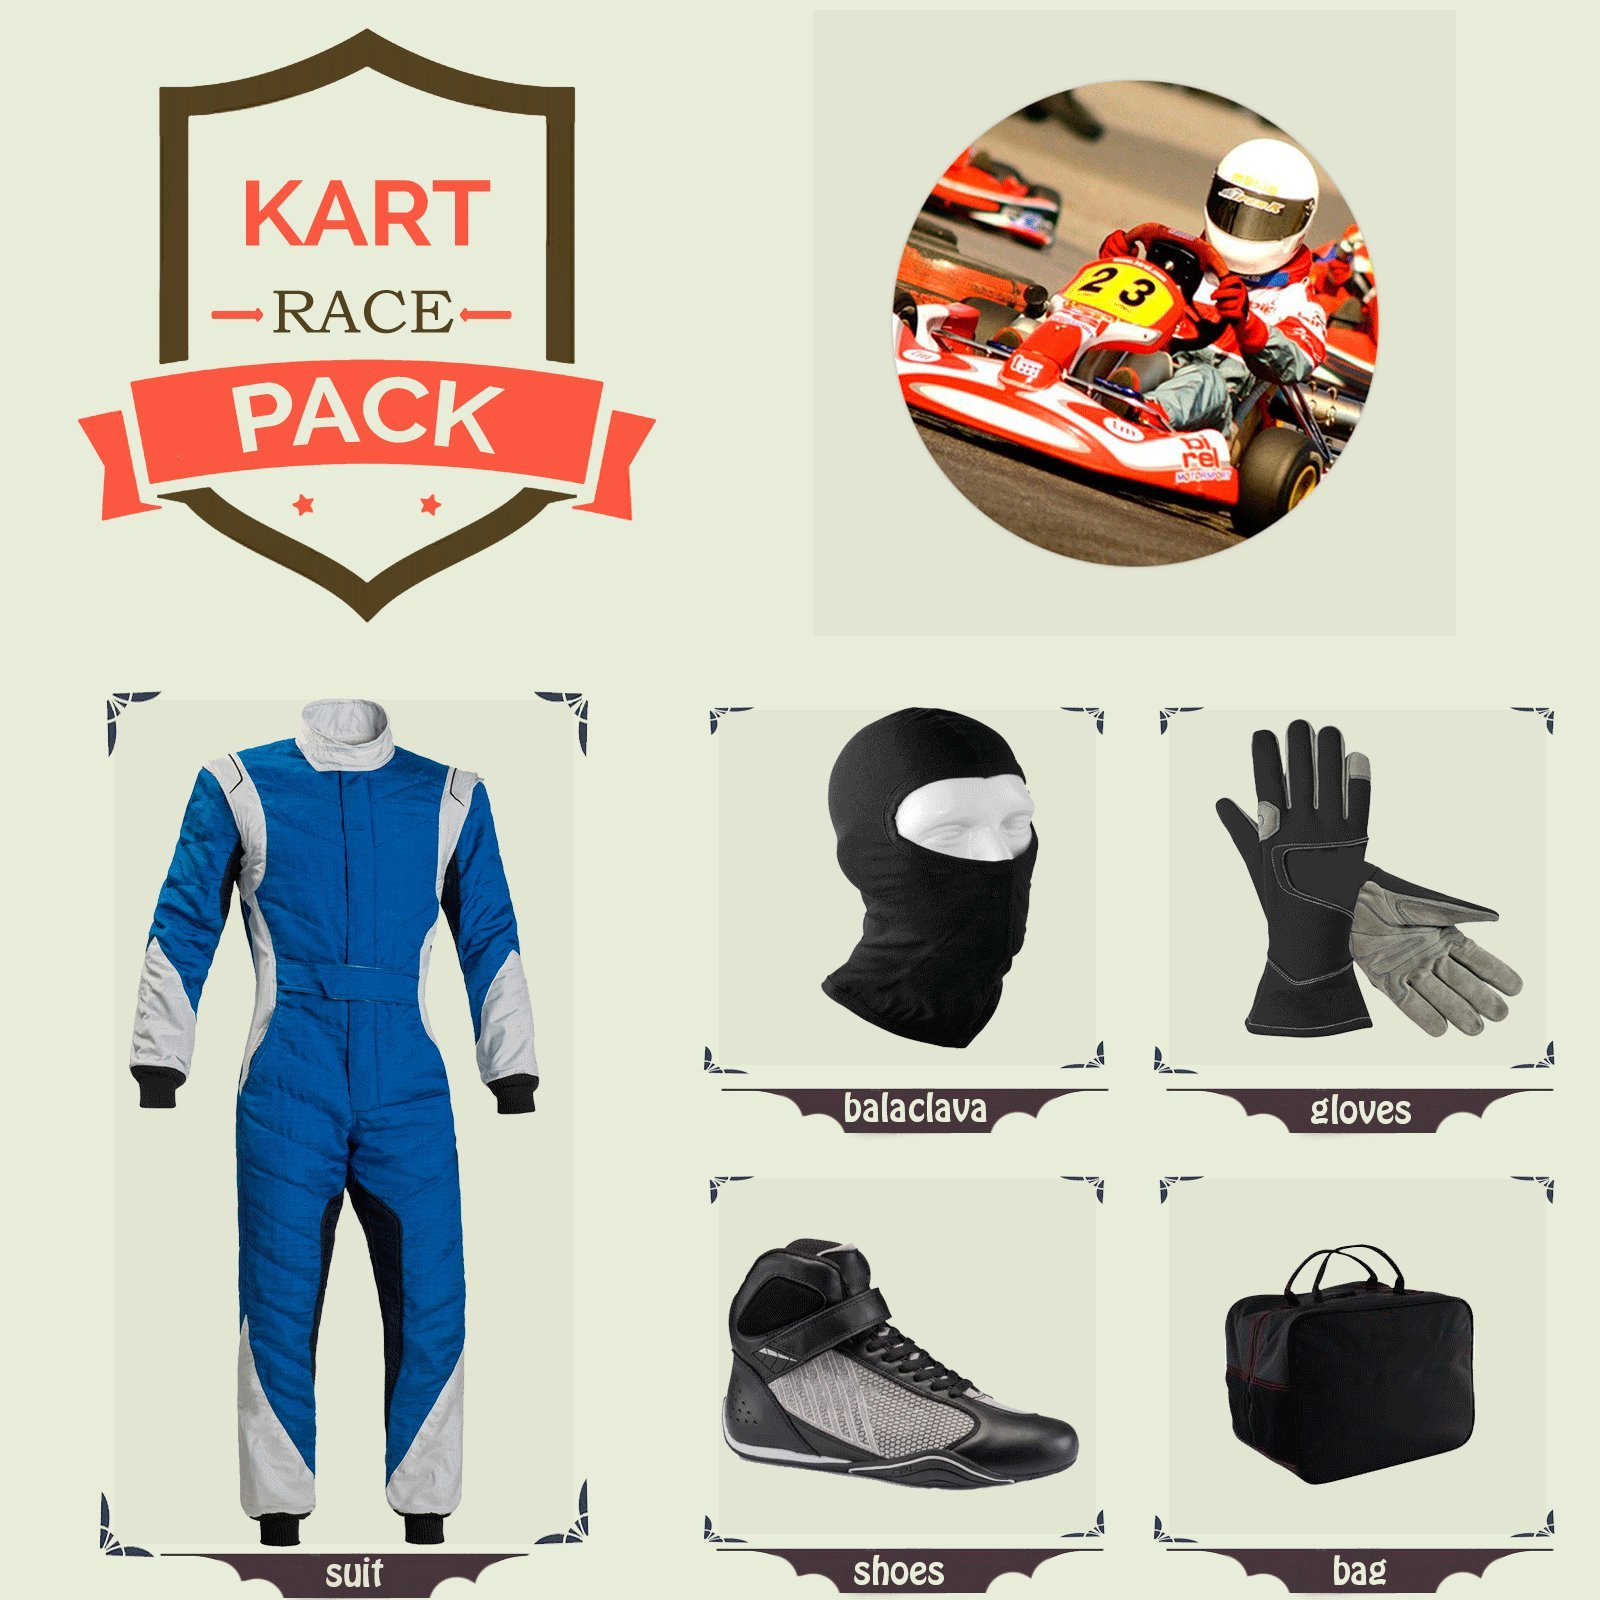 Sports Blue Go Kart Racing Suit Suit,Gloves,Balaclava and Shoes free bag - Blue With Gray Black Style